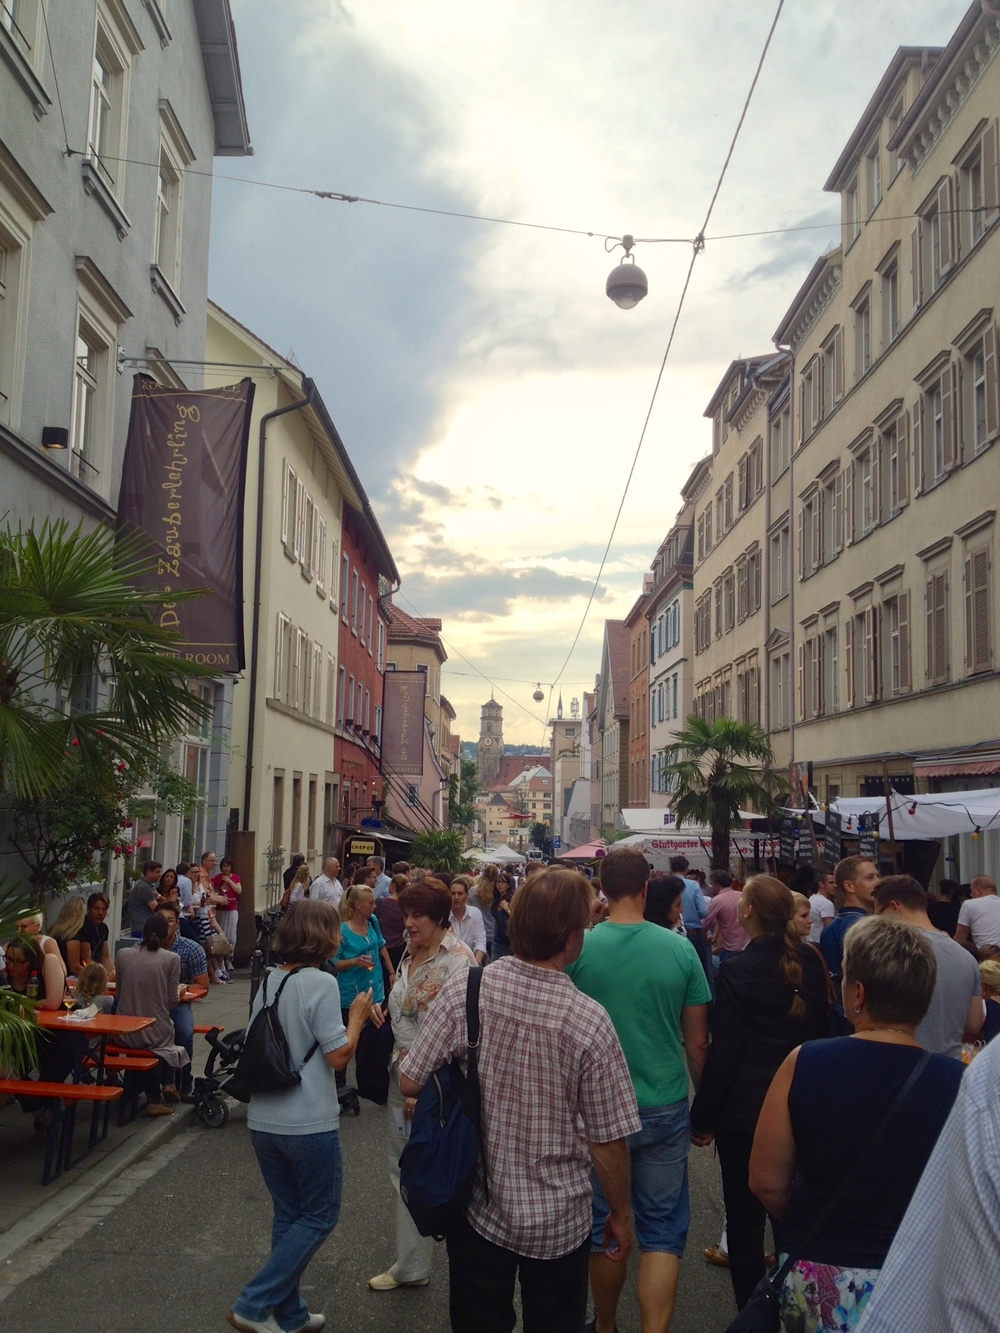 View of the Bohnenviertelfest down Rosenstraße